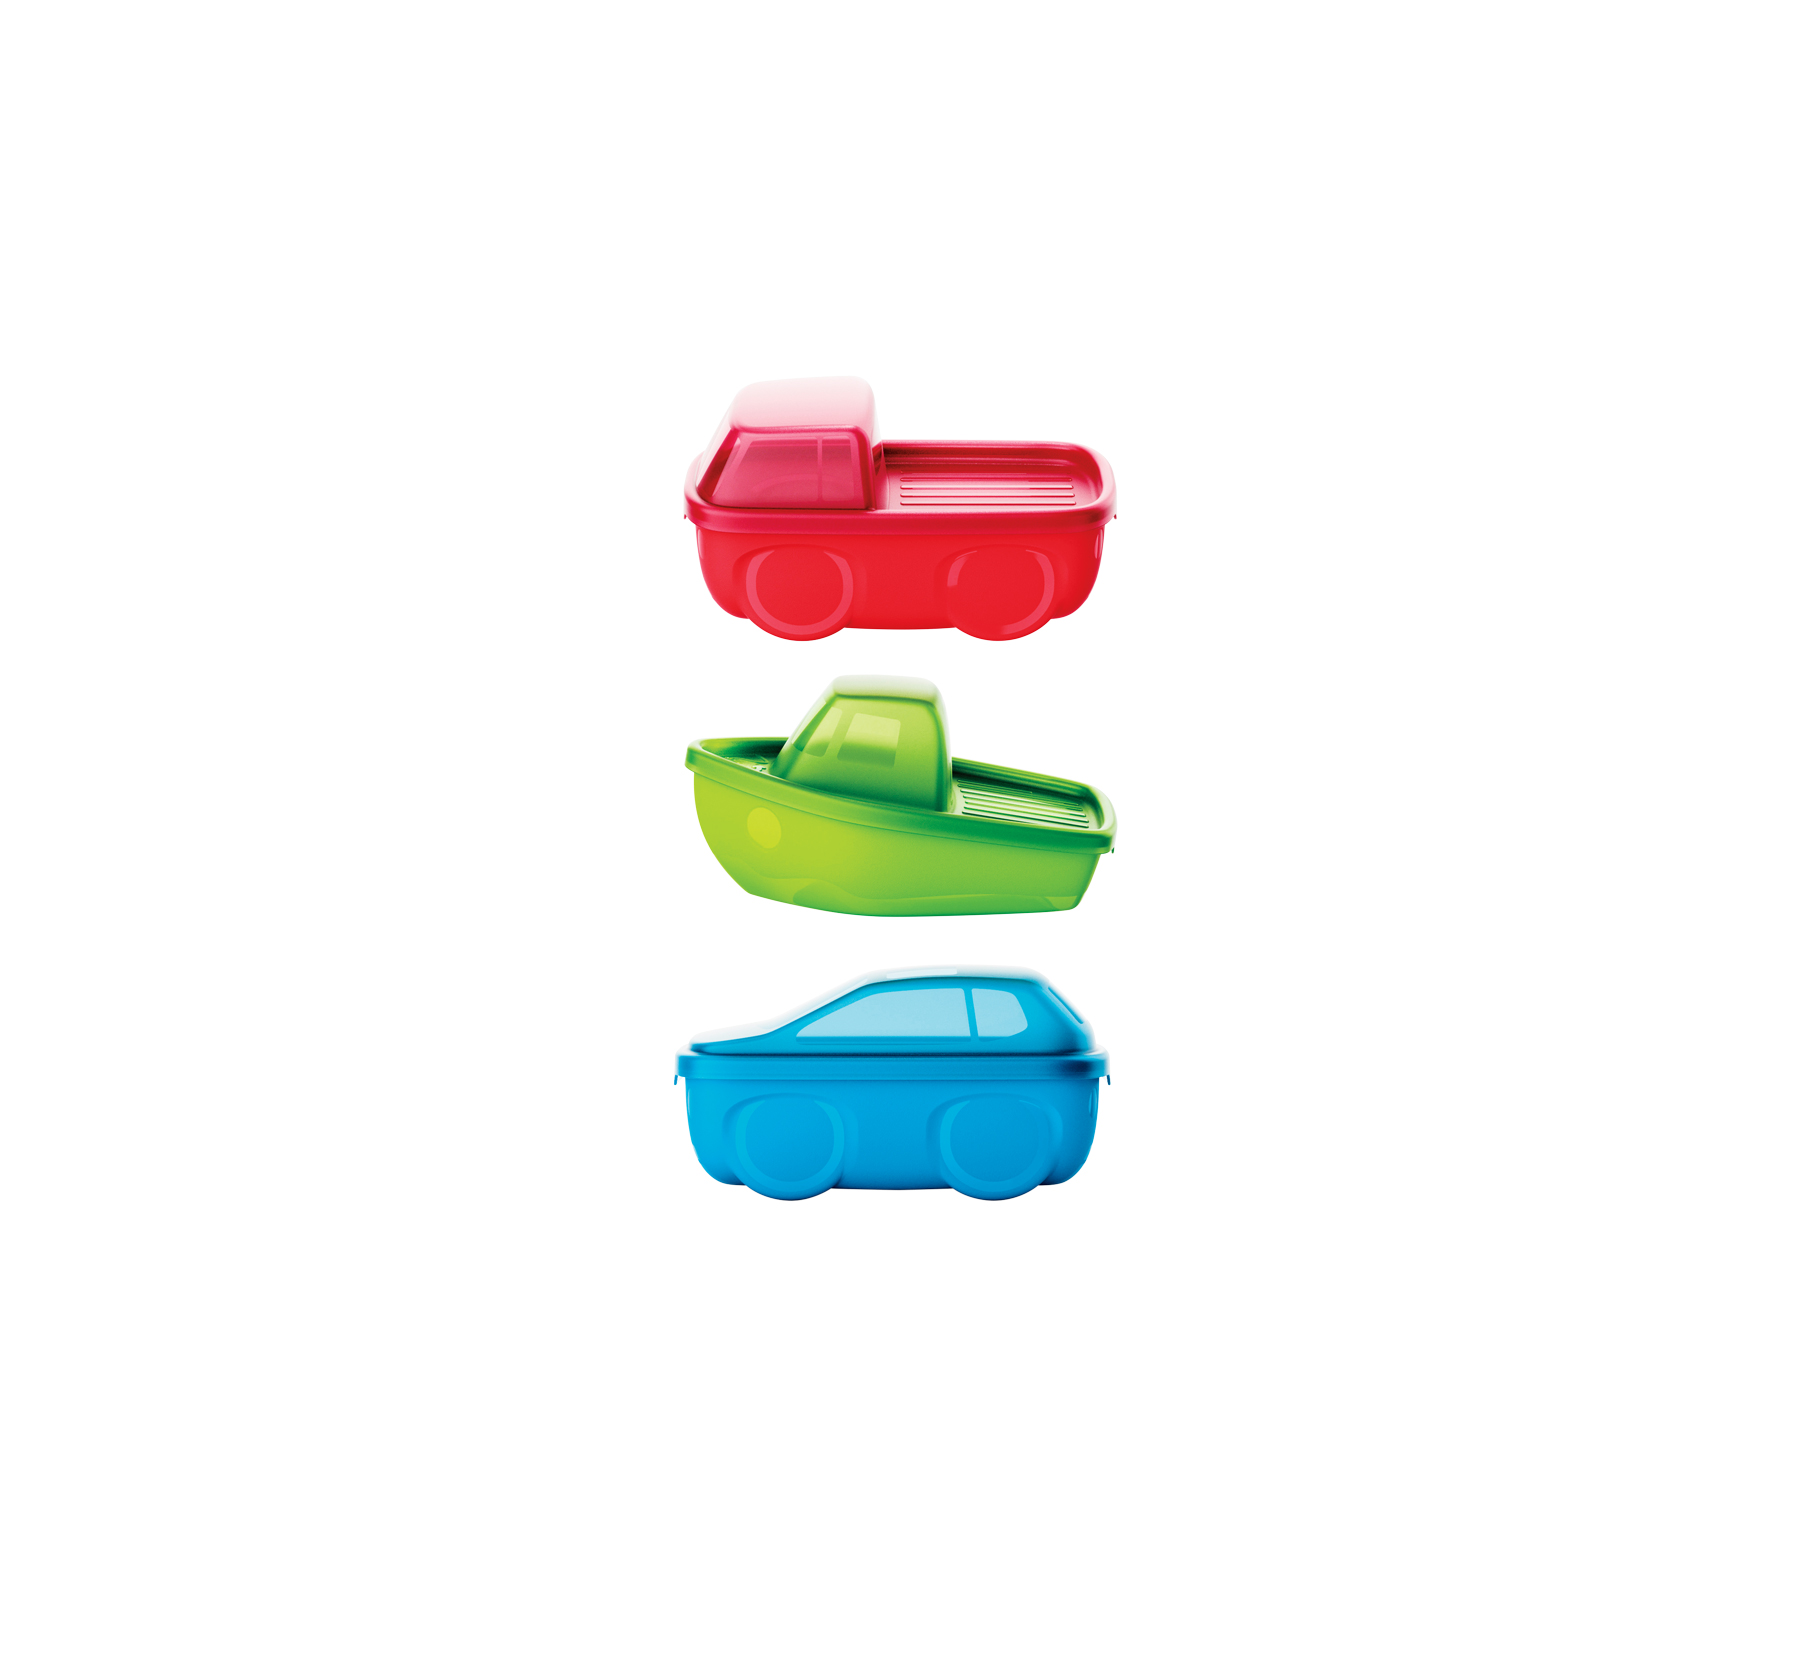 Packing Snacks Smilo On-the-Go Snack Containers